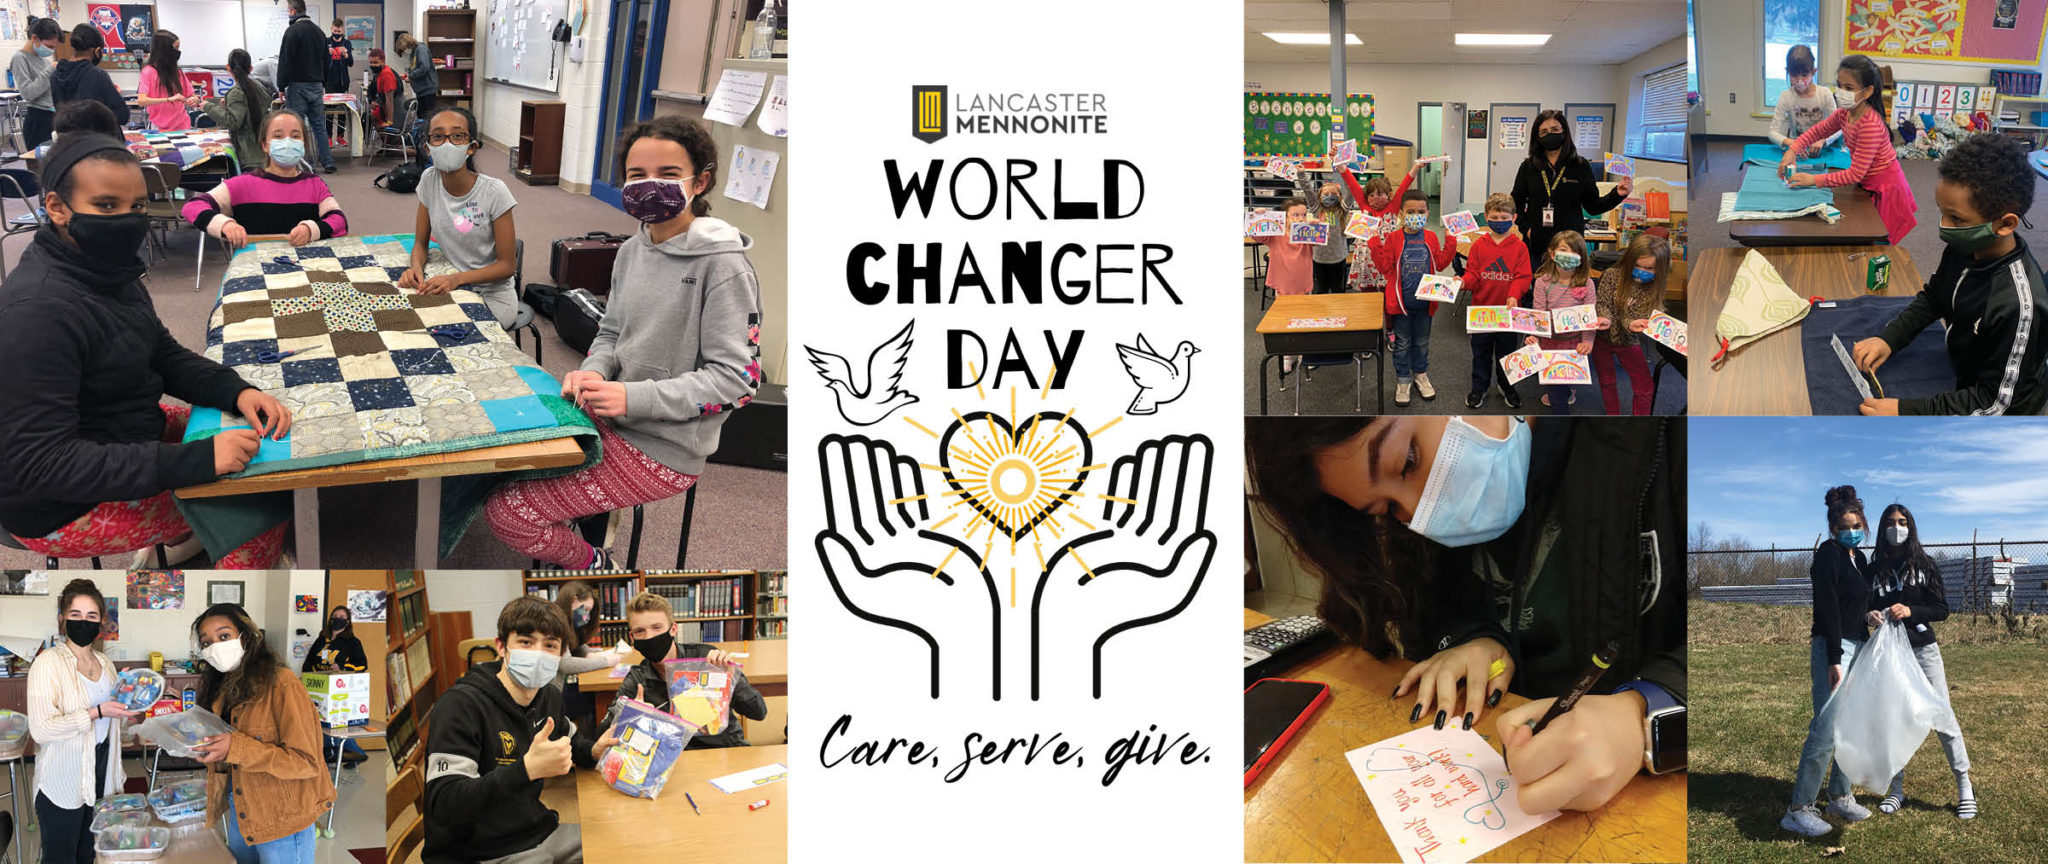 world changer banner with photos from the day